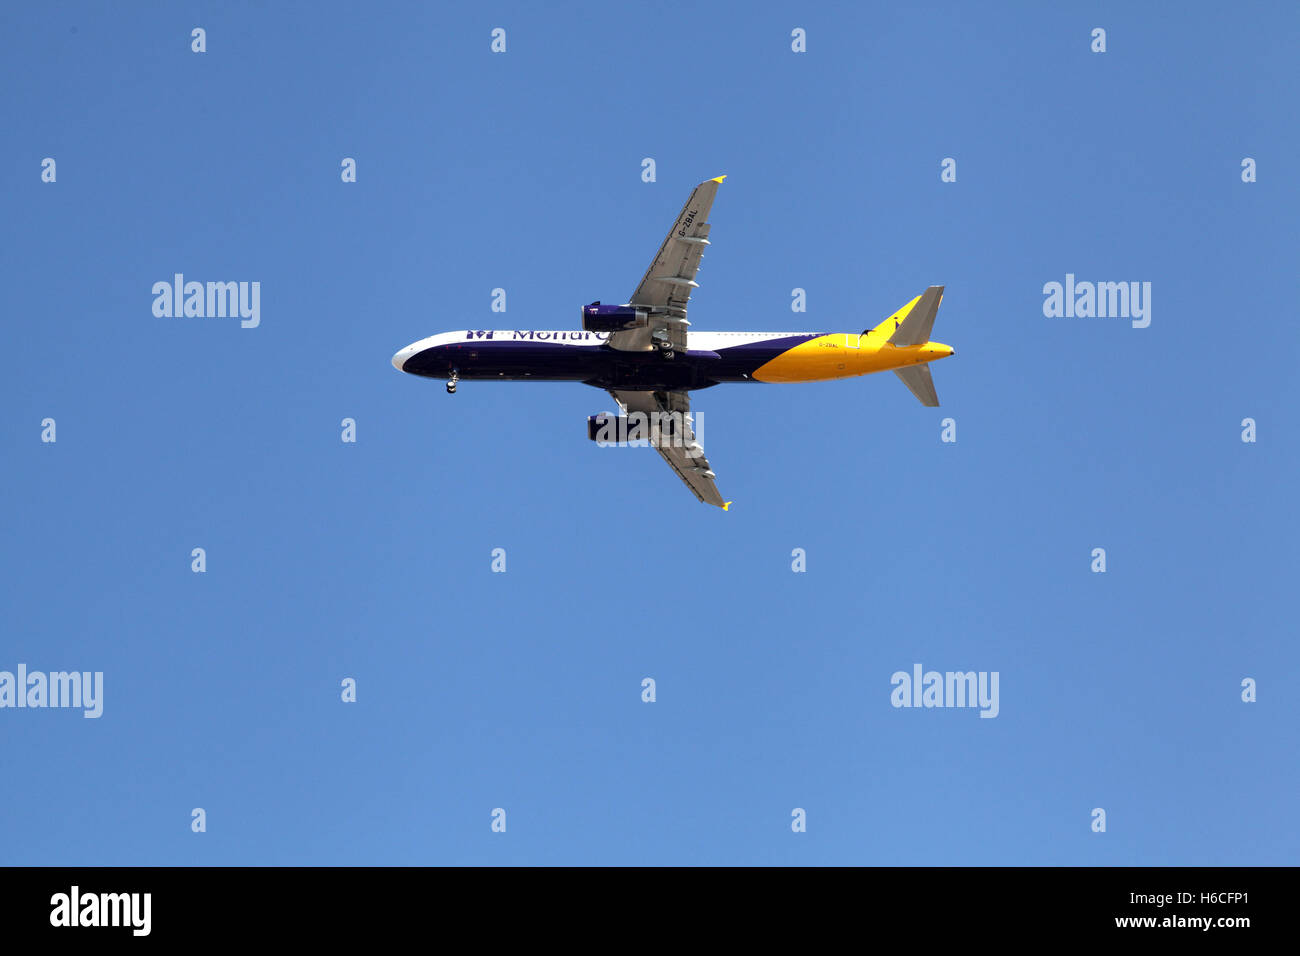 MONARCH AIRLINE British air company plane about to land with tourists to Croatia - Stock Image